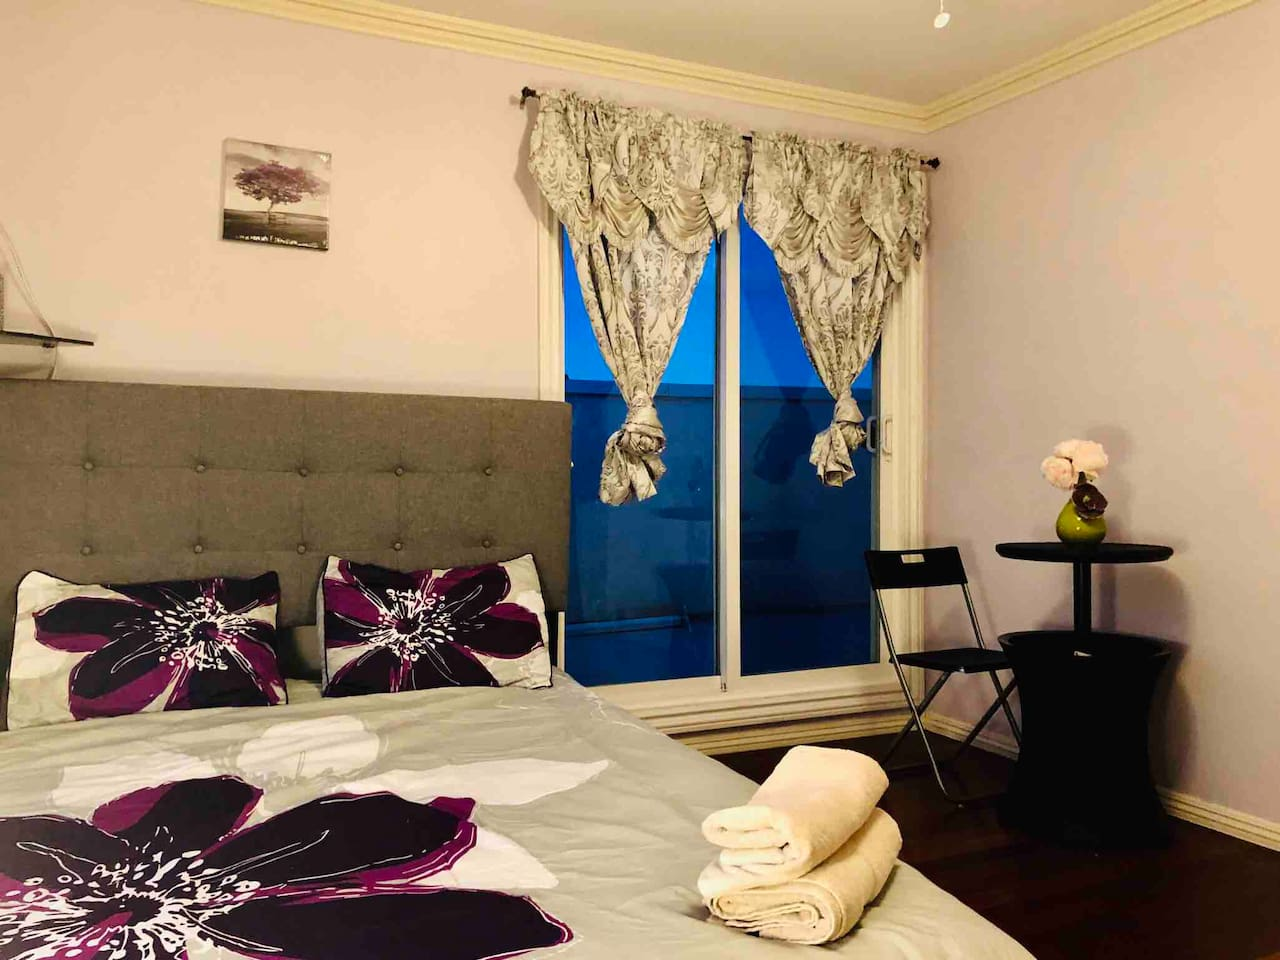 Beautiful bed room all new mattress and bed with private balcony and entry is looking for you